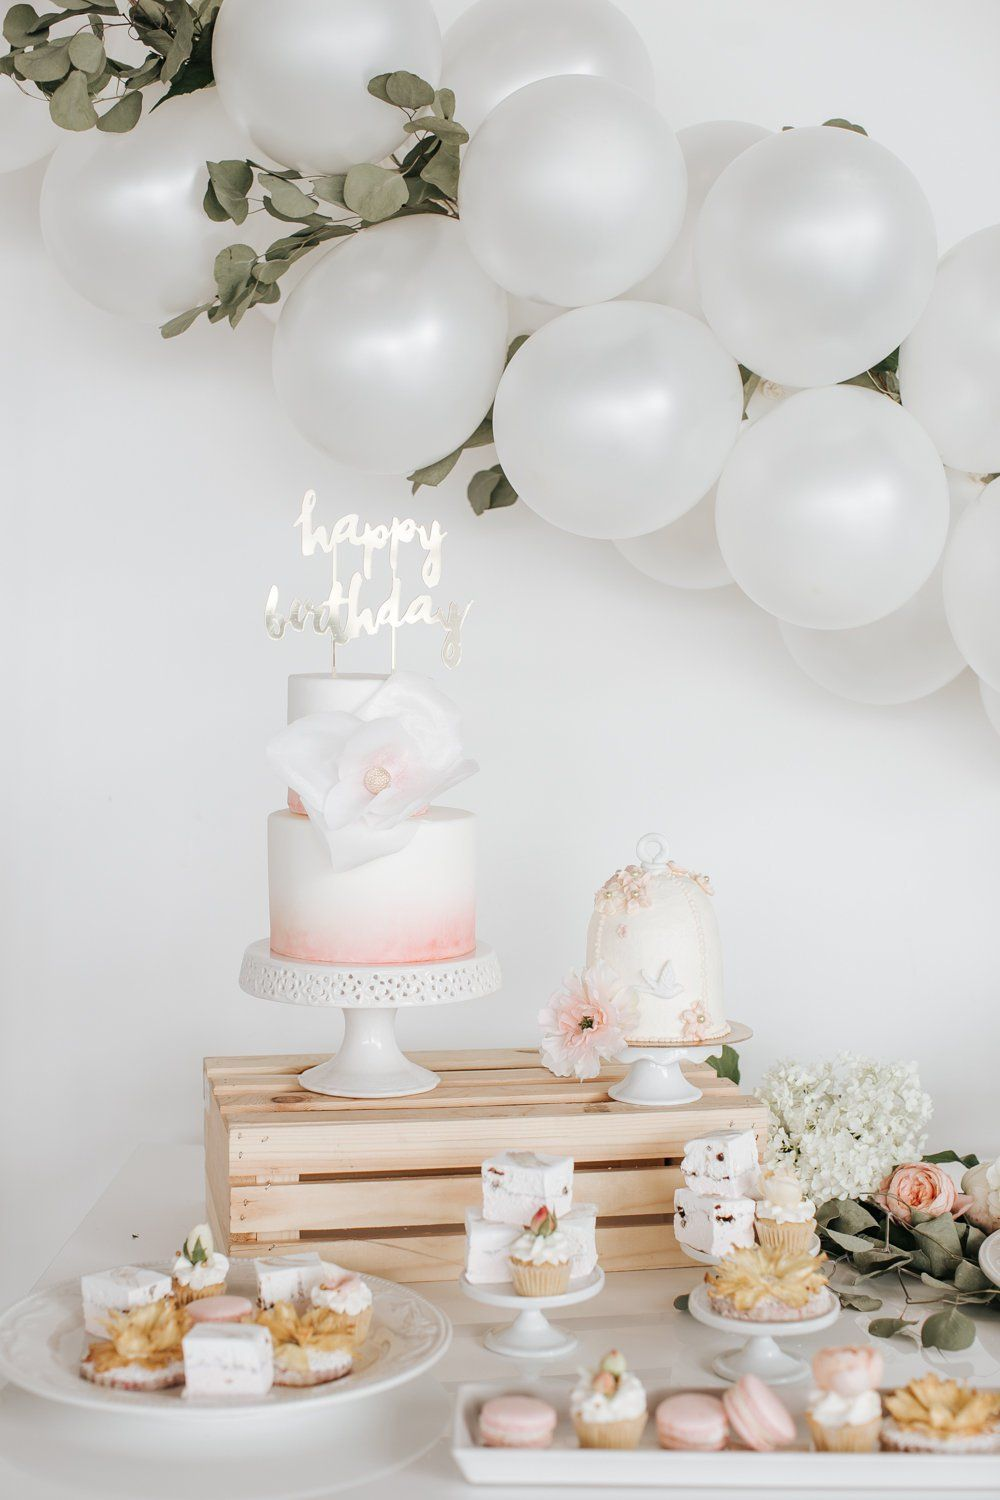 How To Make A Simple Balloon Garland Backdrop Floral Birthday